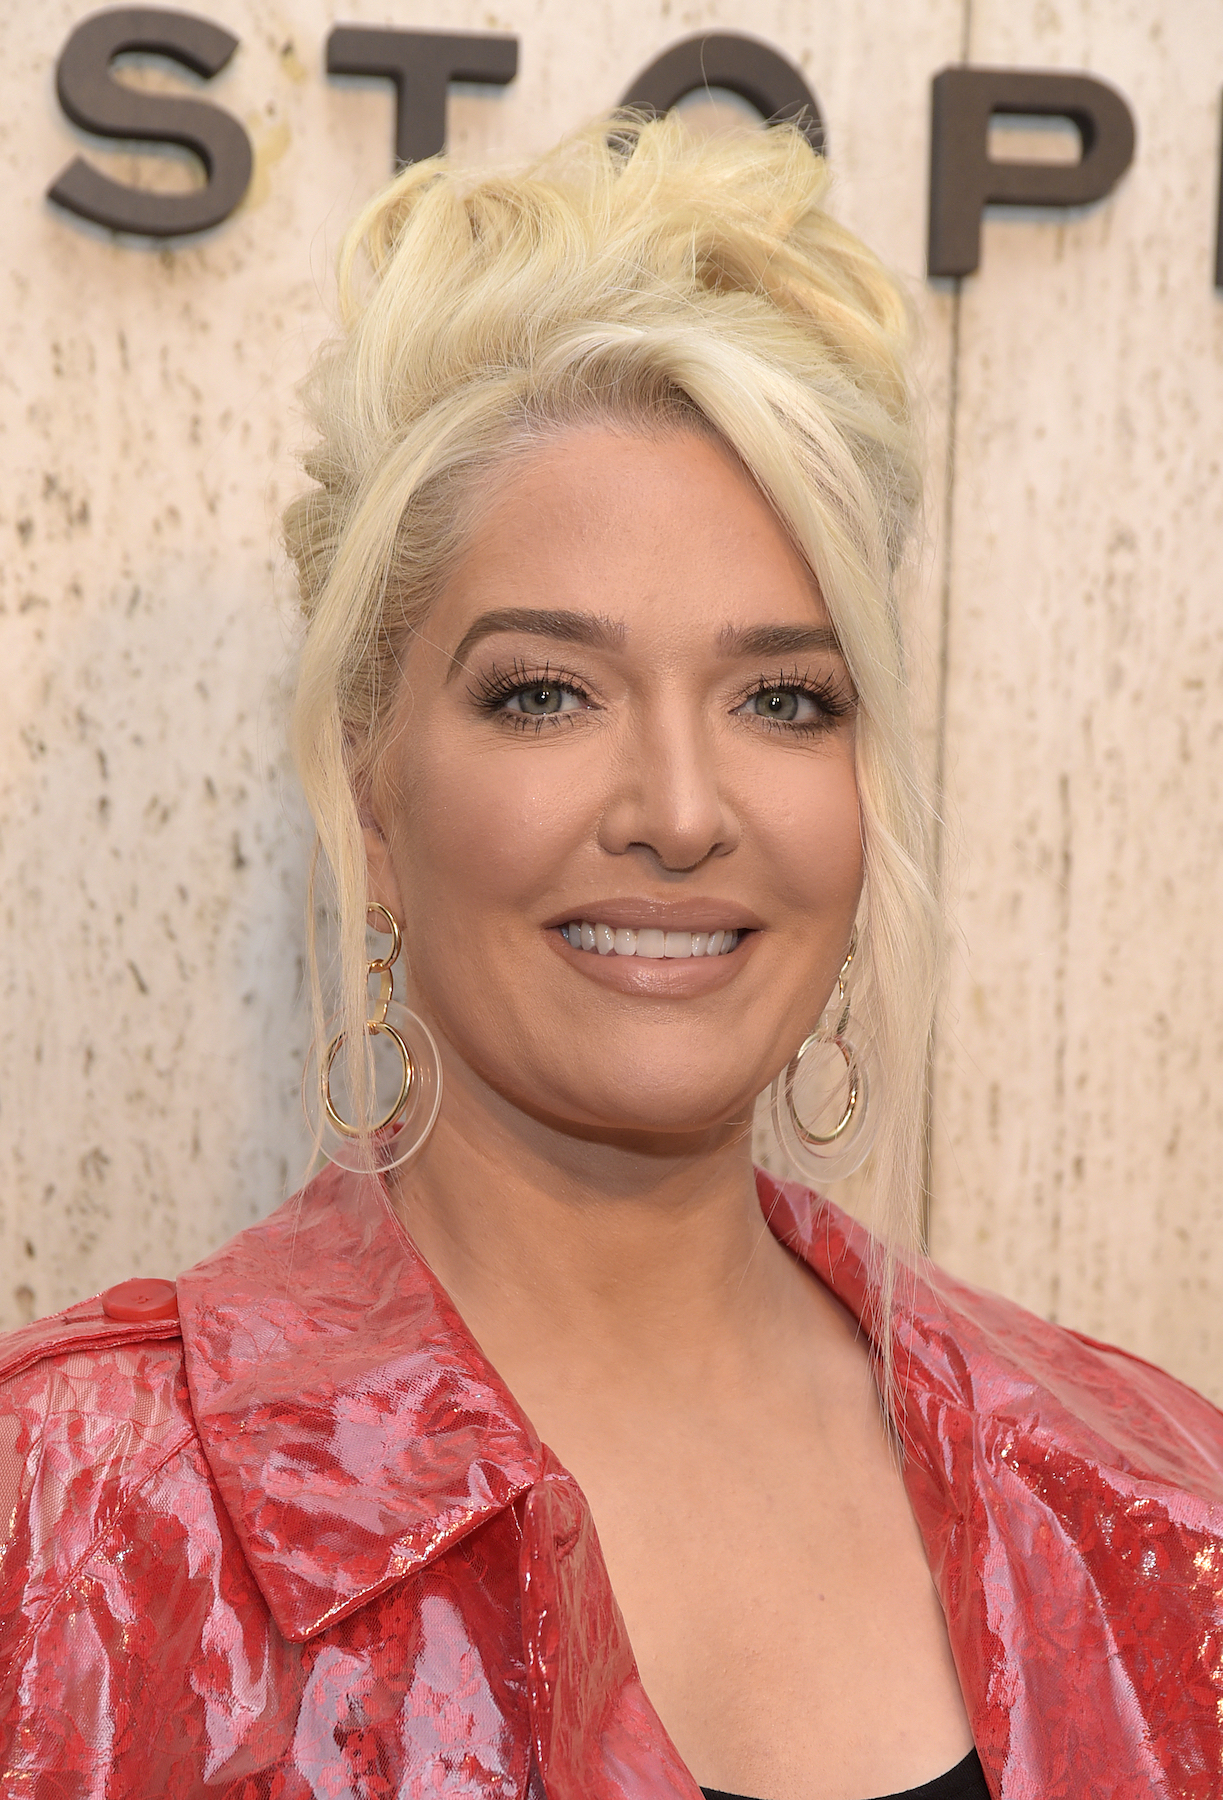 Erika Jayne, Real Housewives of Beverly Hills, RHOBH - Erika Jayne attends Christopher Kane's party at Giorgio's on April 29, 2019 in Los Angeles.